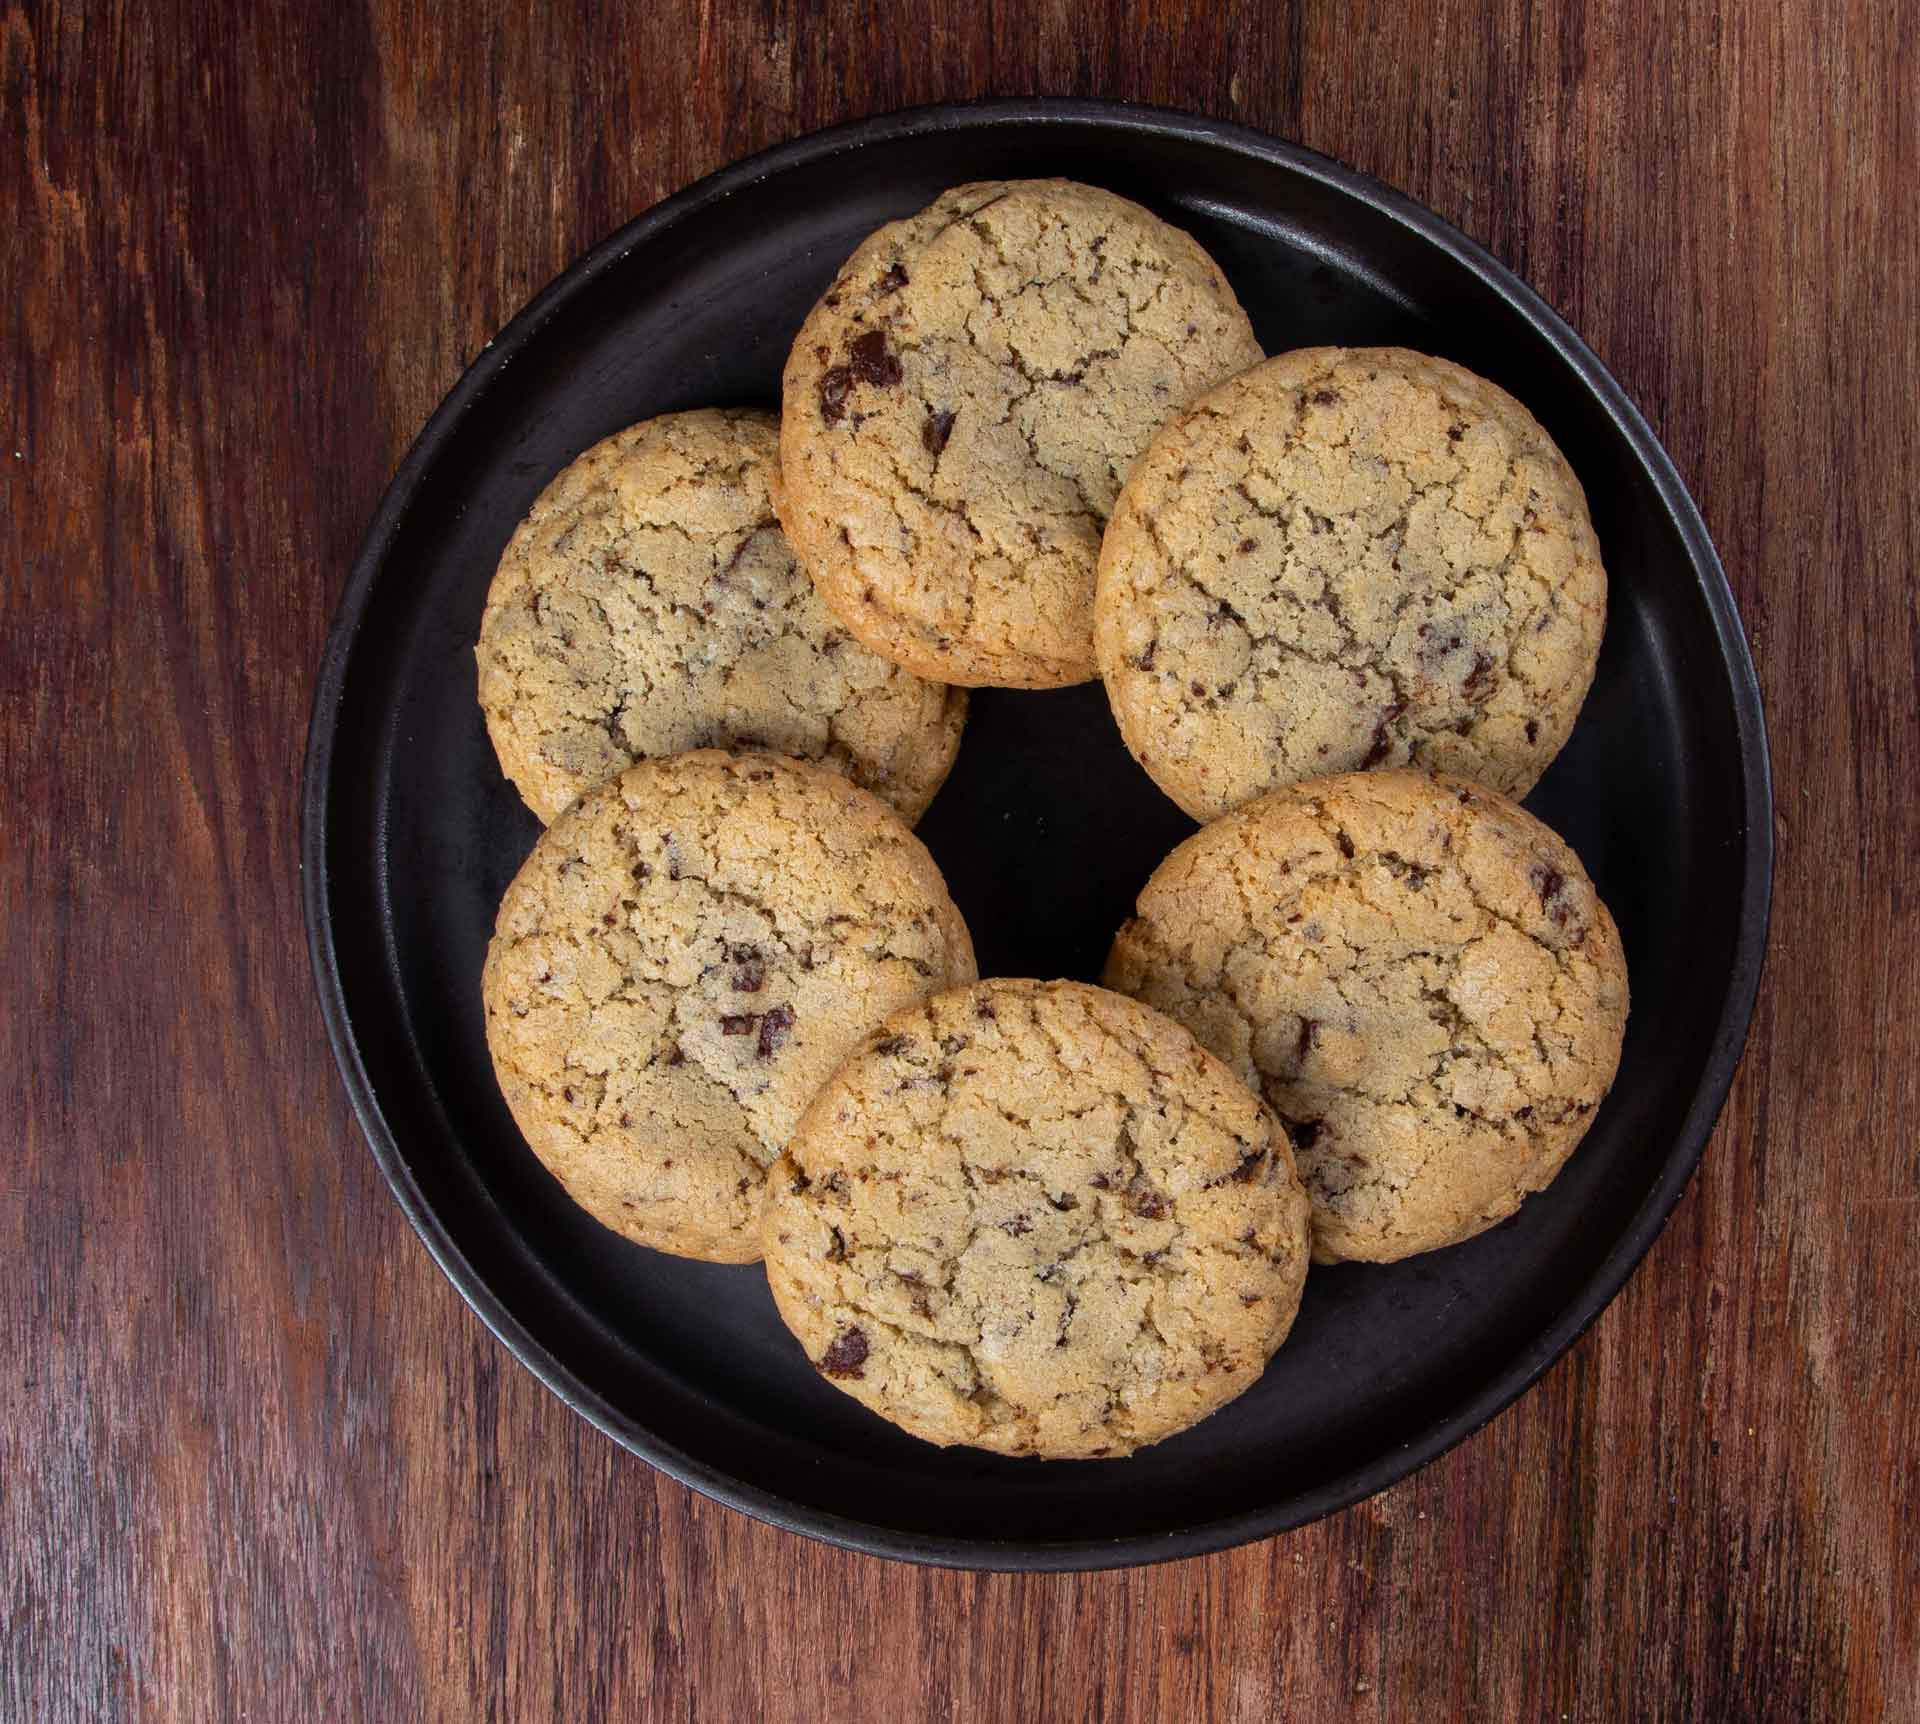 Chewy chocolate chips